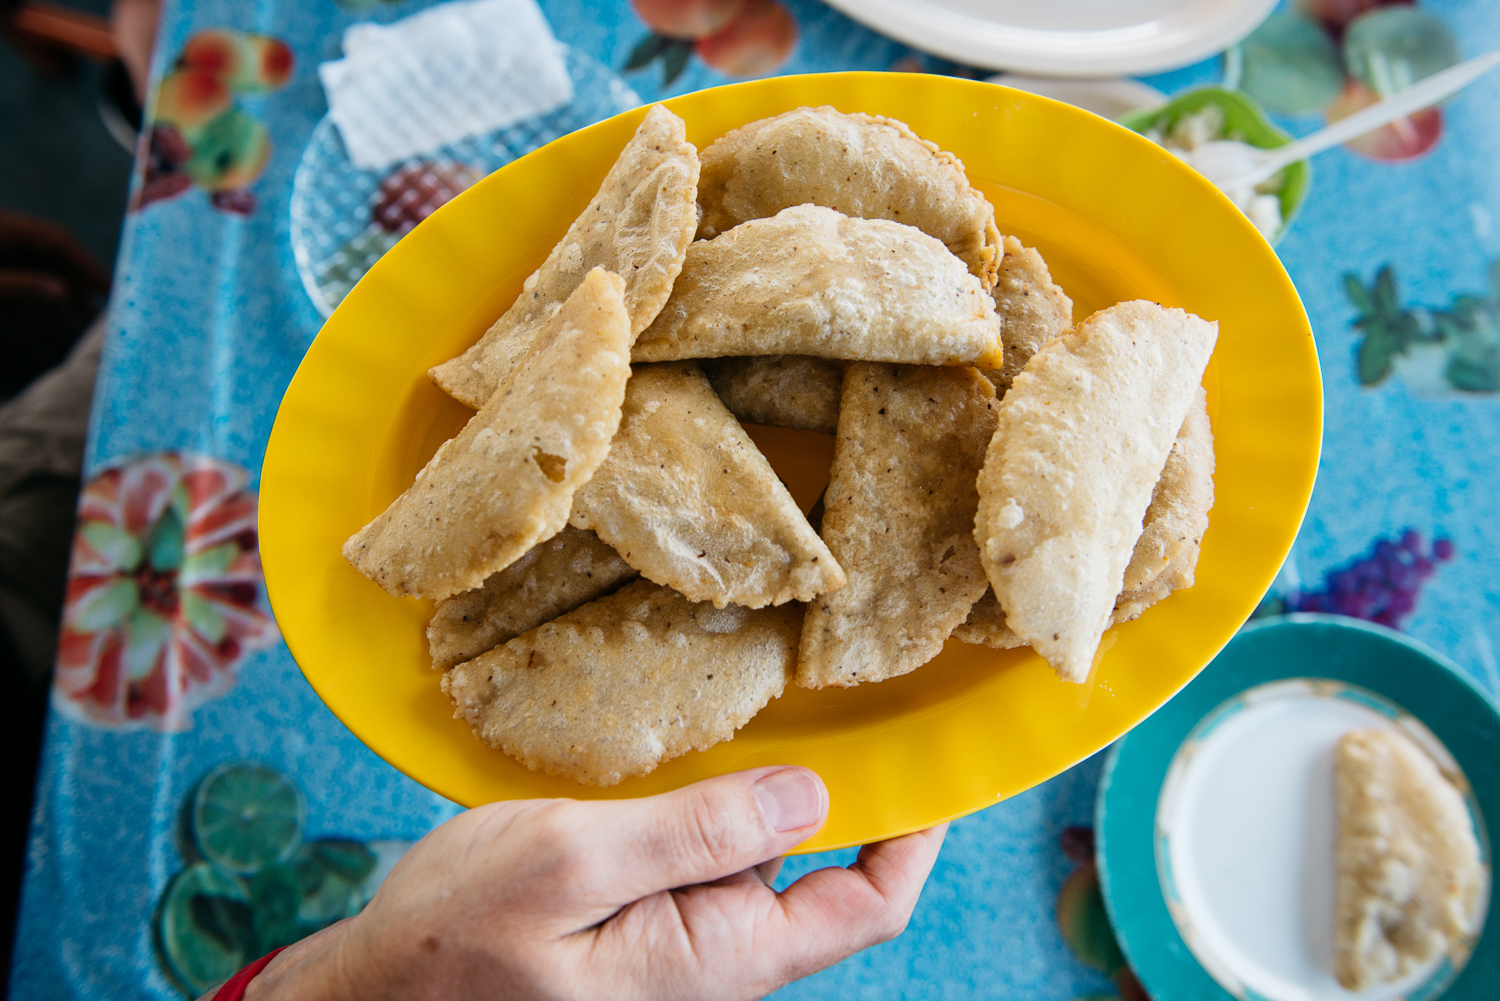 Panades: A fried Belizean hand pie filled with recado-spiced meat and eaten with cabbage